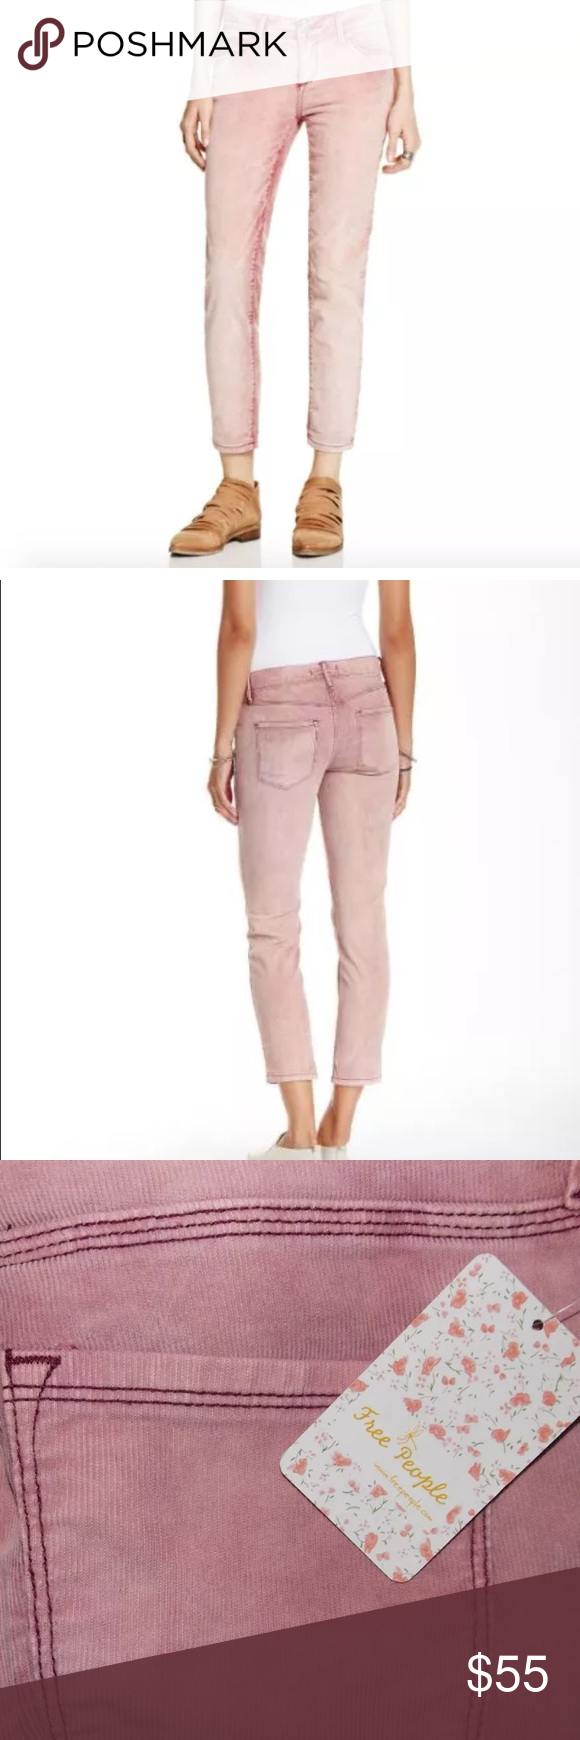 """Free People Corduroy Cropped Pants in Merlot Free People Cropped Pants New with tags! MSRP: $78  Size: 27 Color: merlot Inseam: 29"""" Rise: 9""""  Fabric content: 98% cotton, 2% elastin Free People Jeans Ankle & Cropped"""